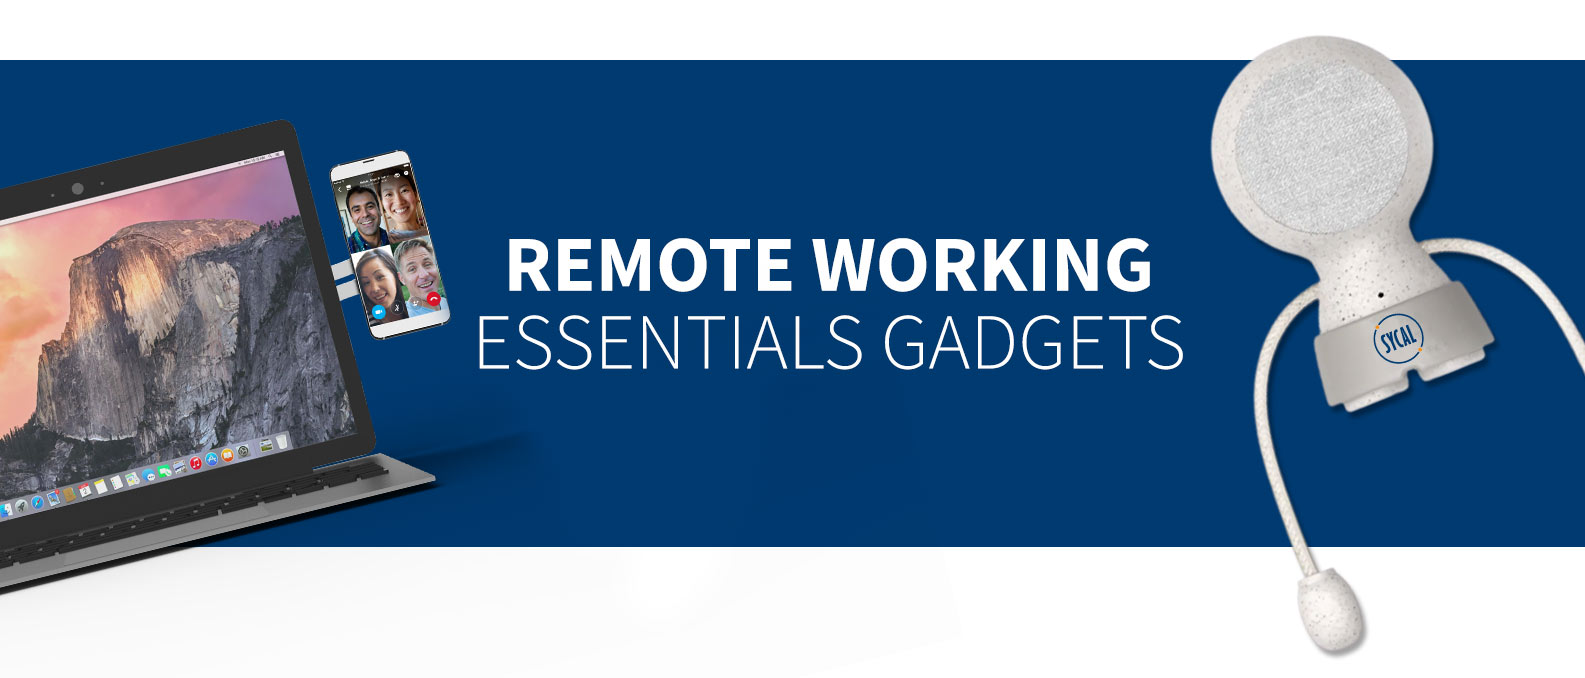 branded merchandise for working from home